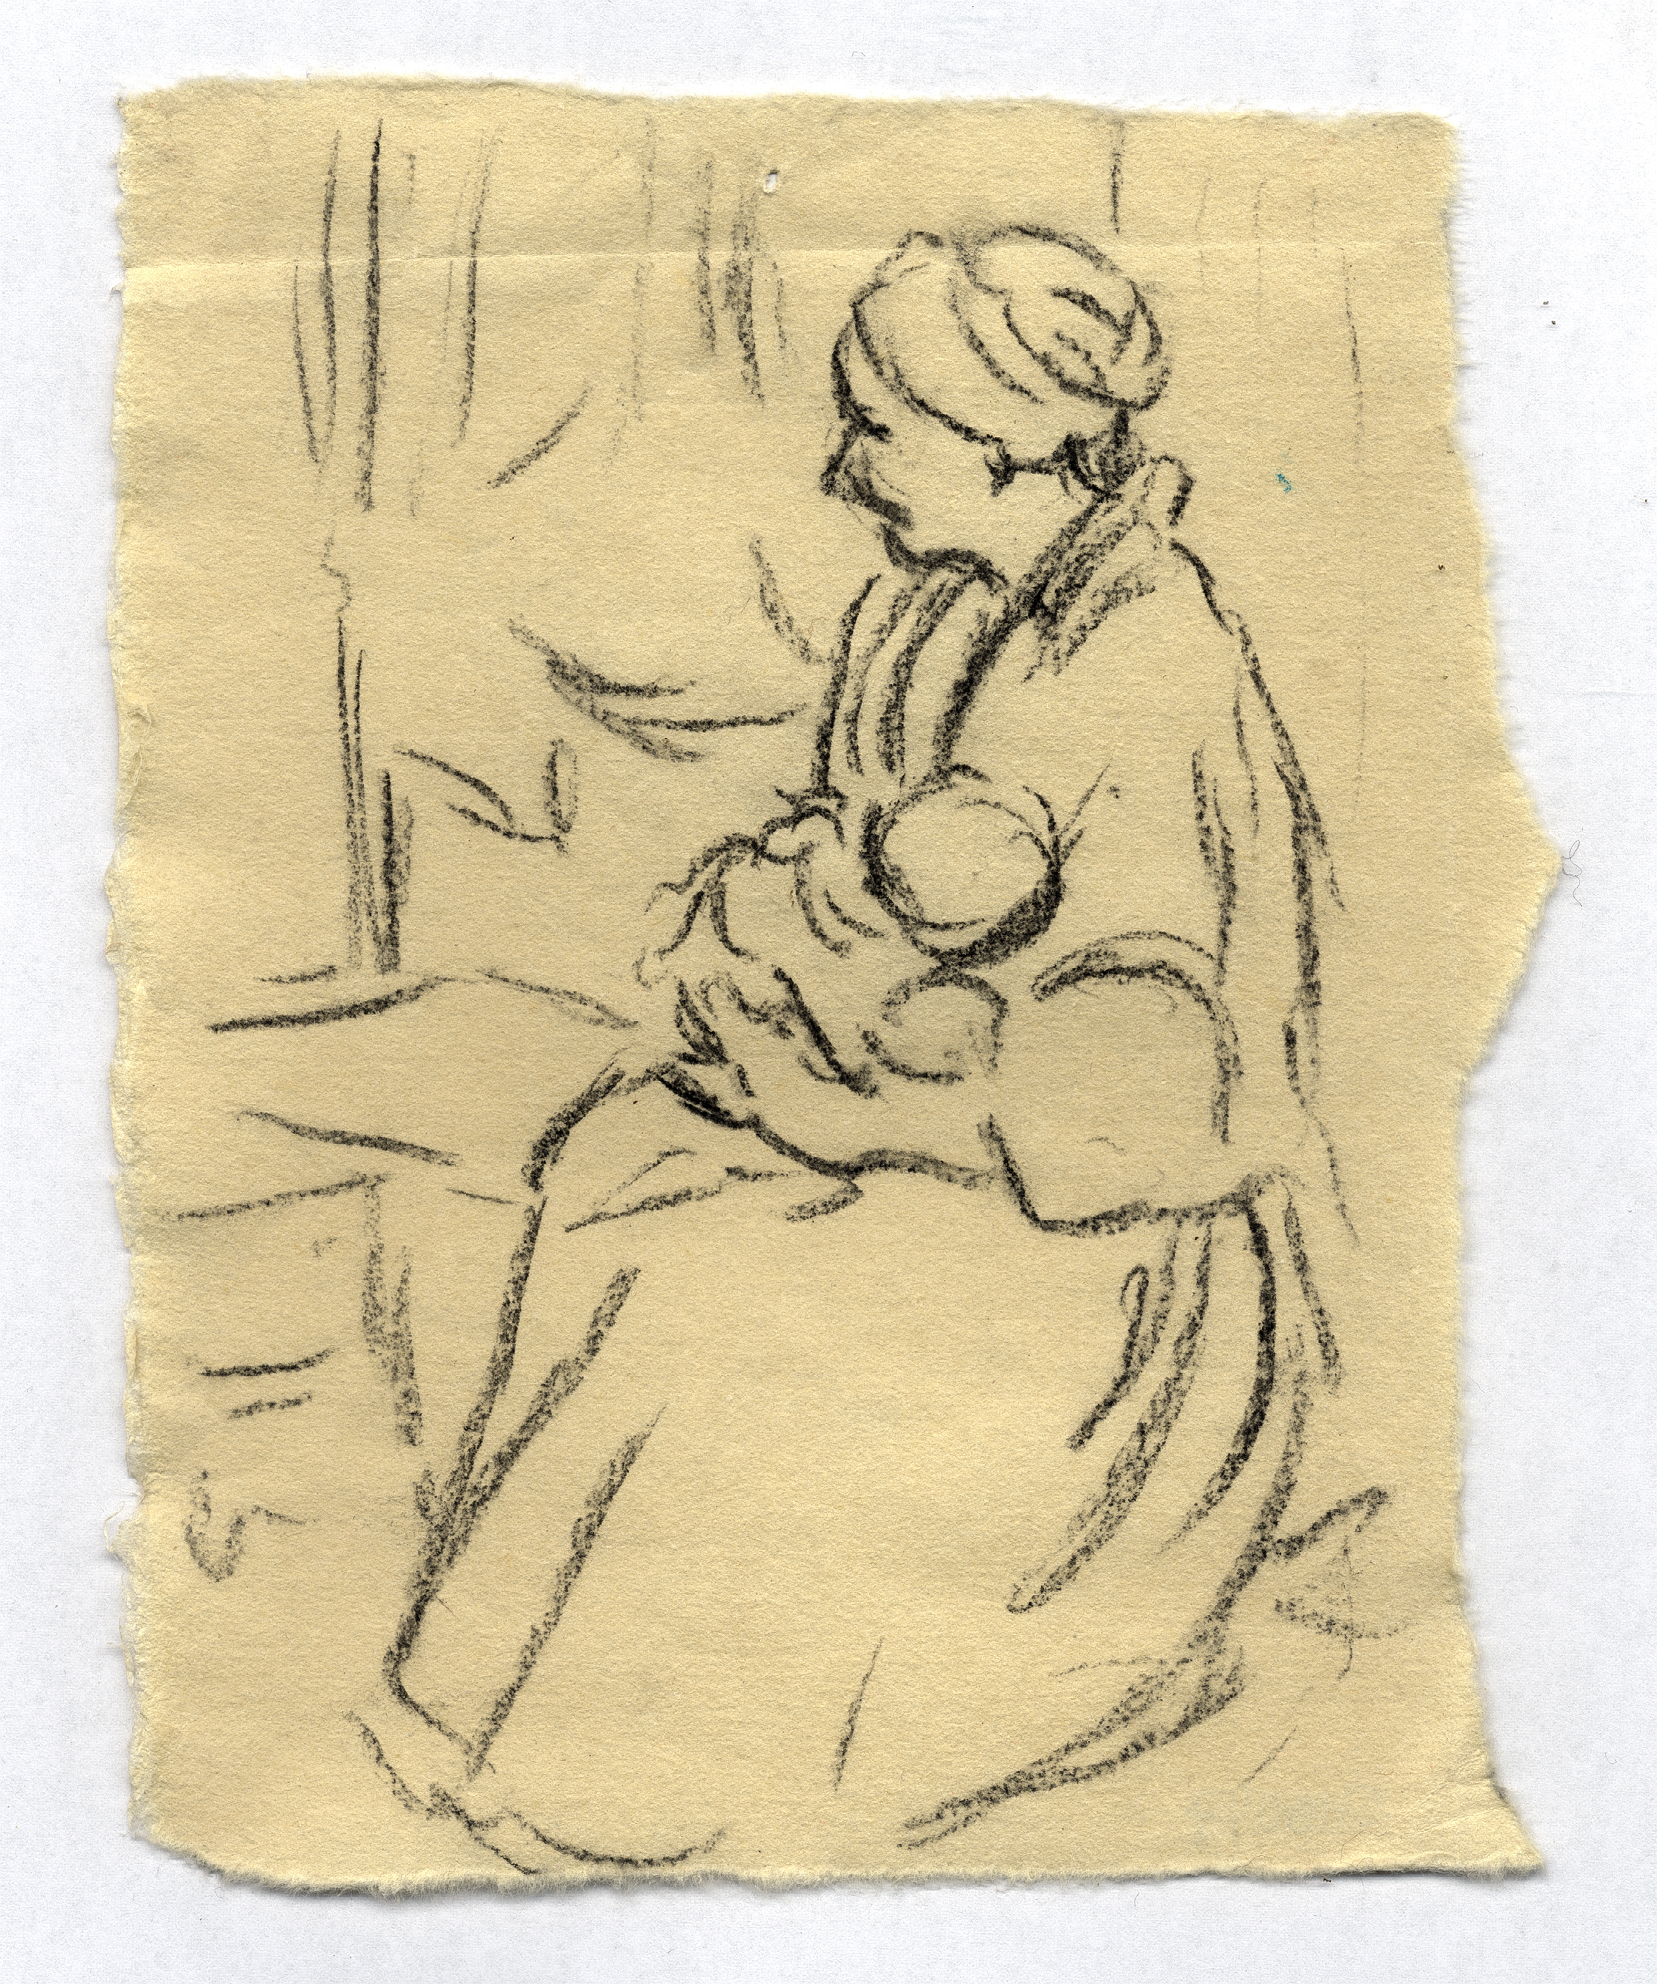 Study for Mother and Child, charcoal on paper, 2007